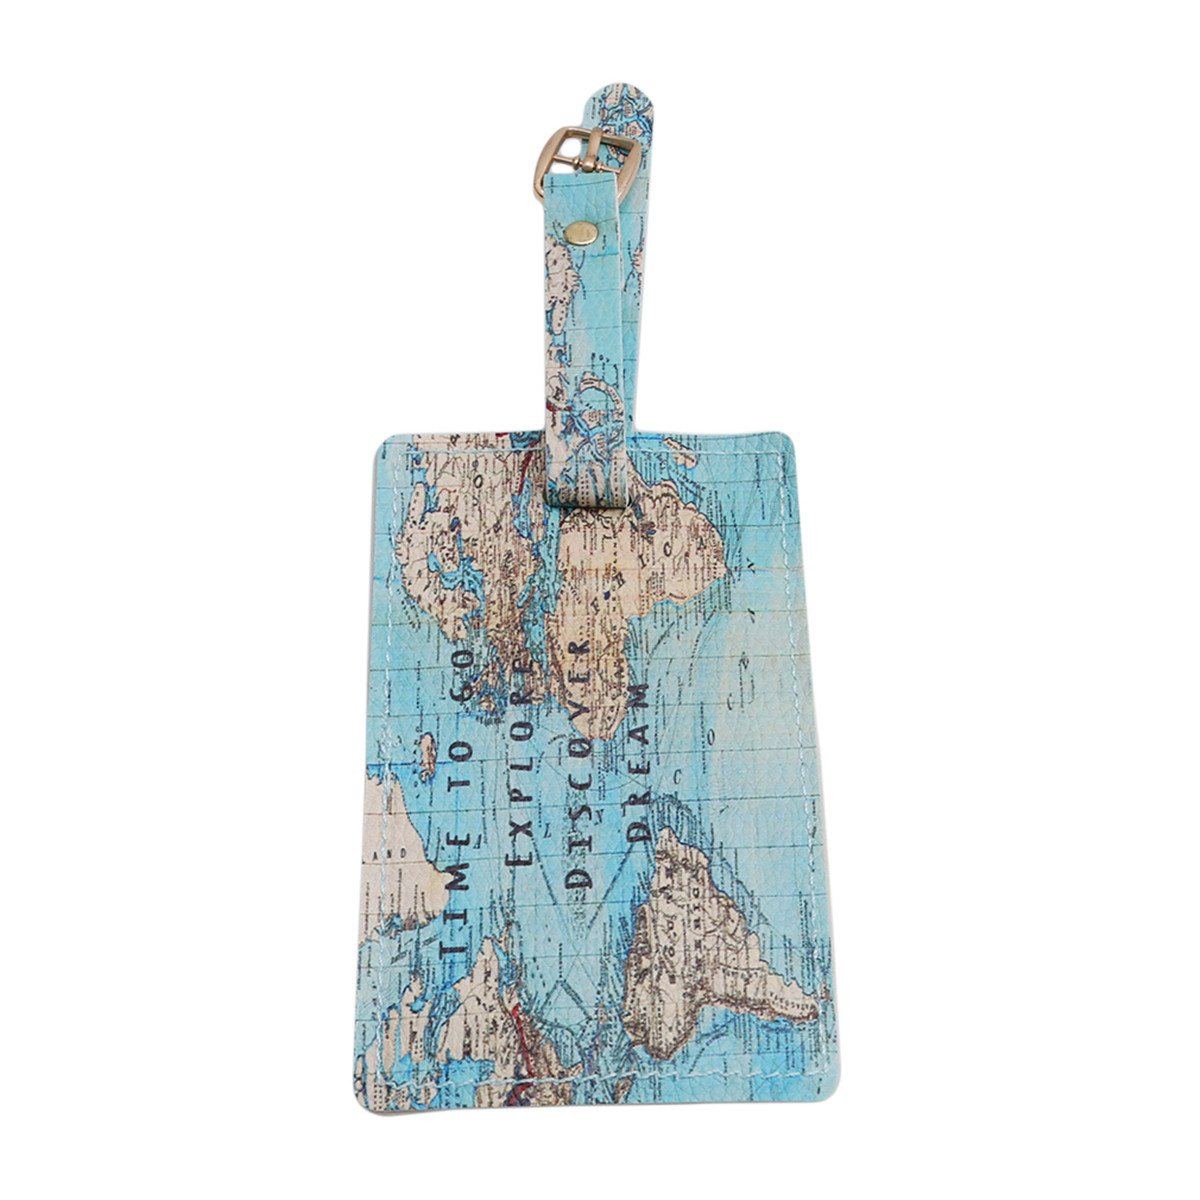 CH PU Leather Luggage Tags Suitcase Labels Bag Travel Accessories (Map)